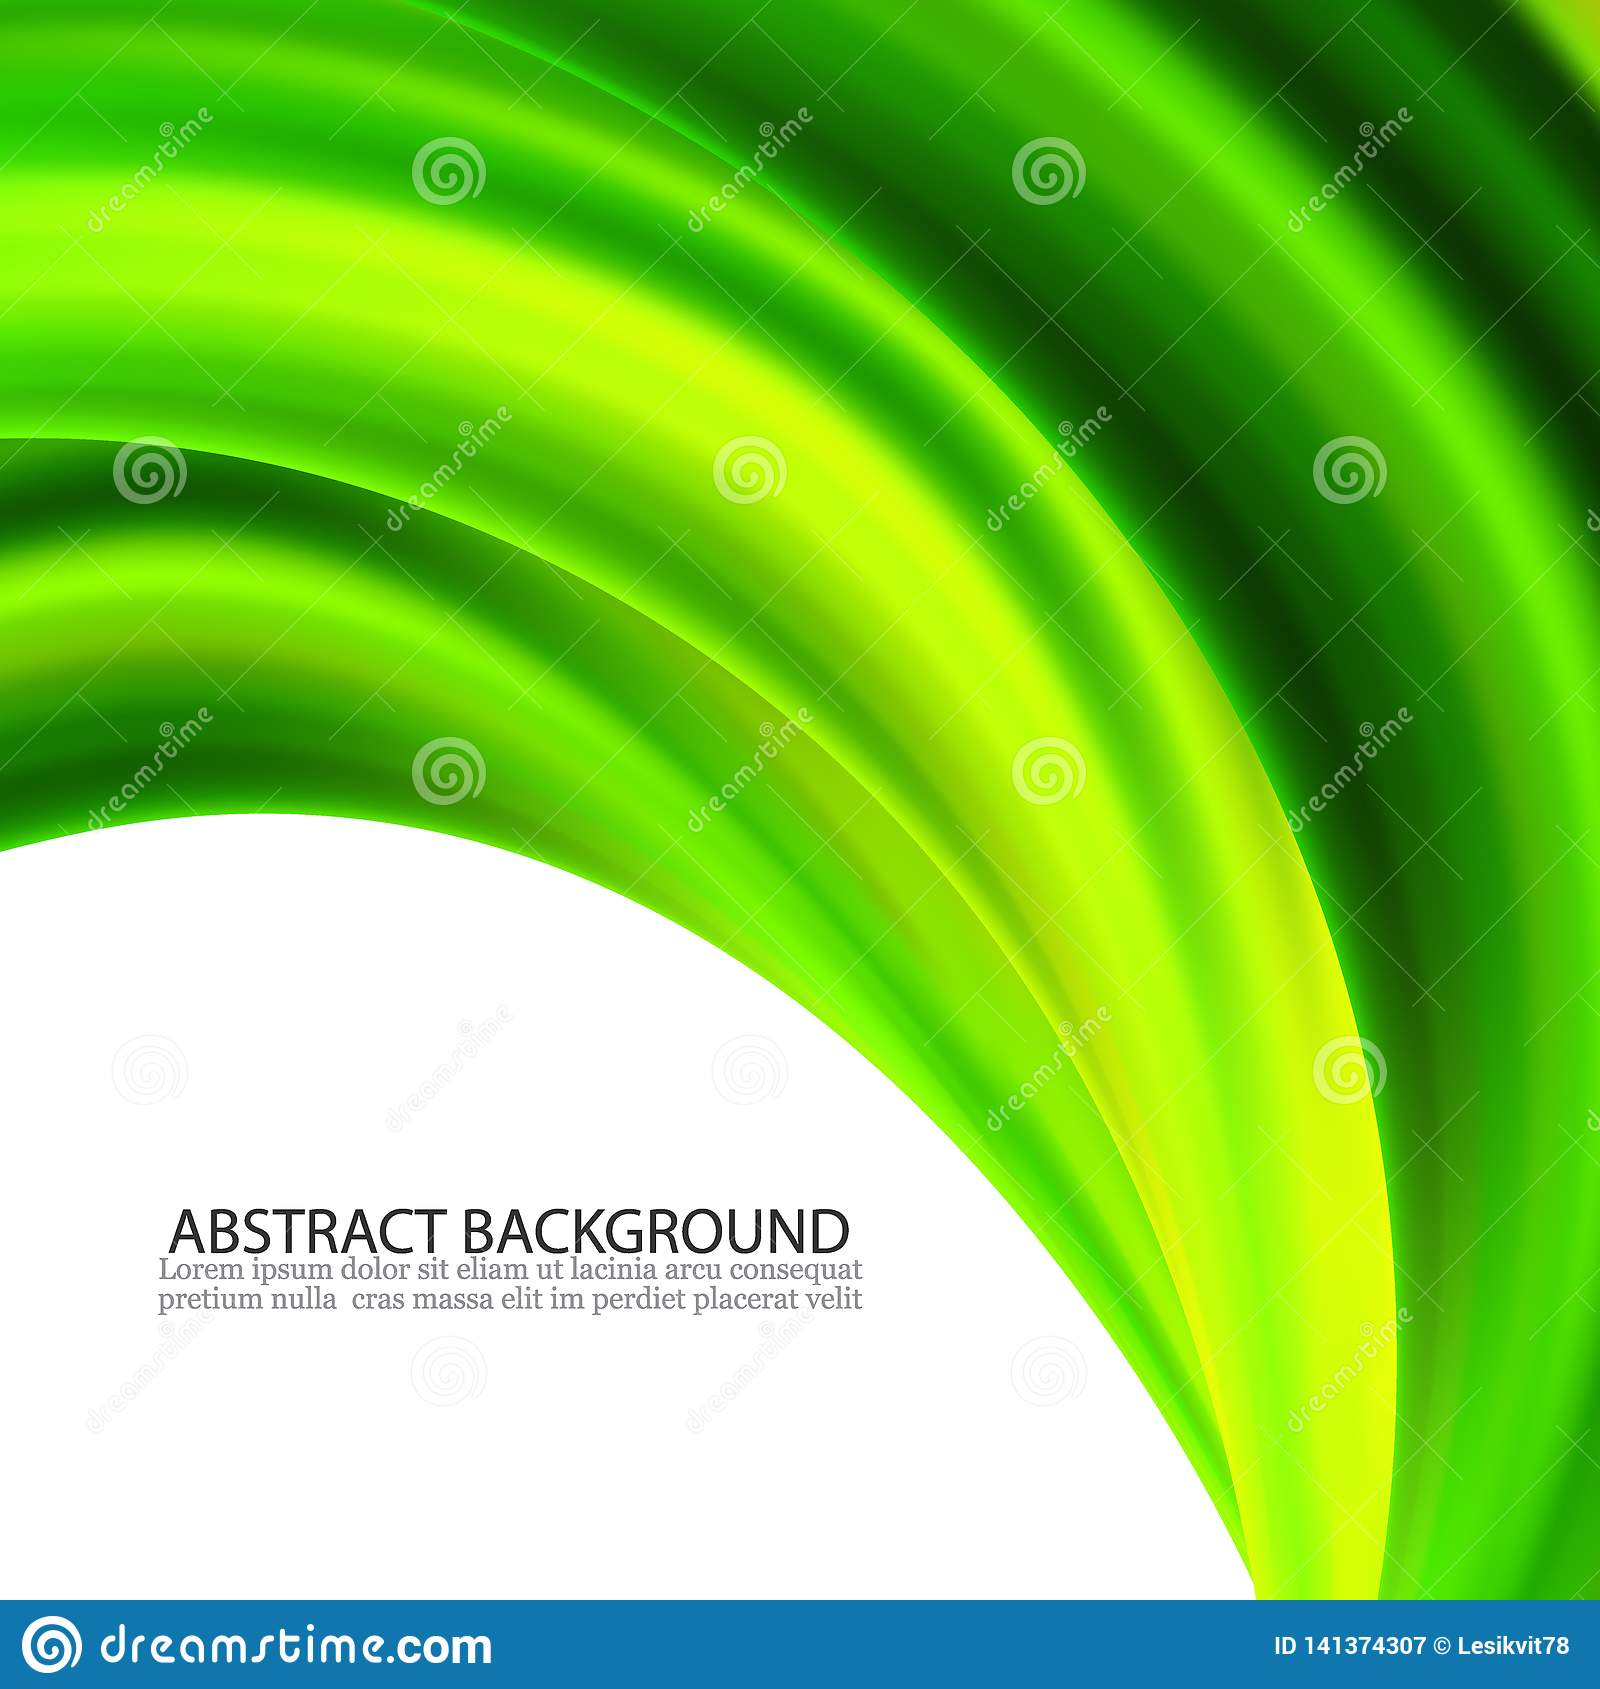 Abstract Vector Green Wavy Lines Colorful Vector Green Wave